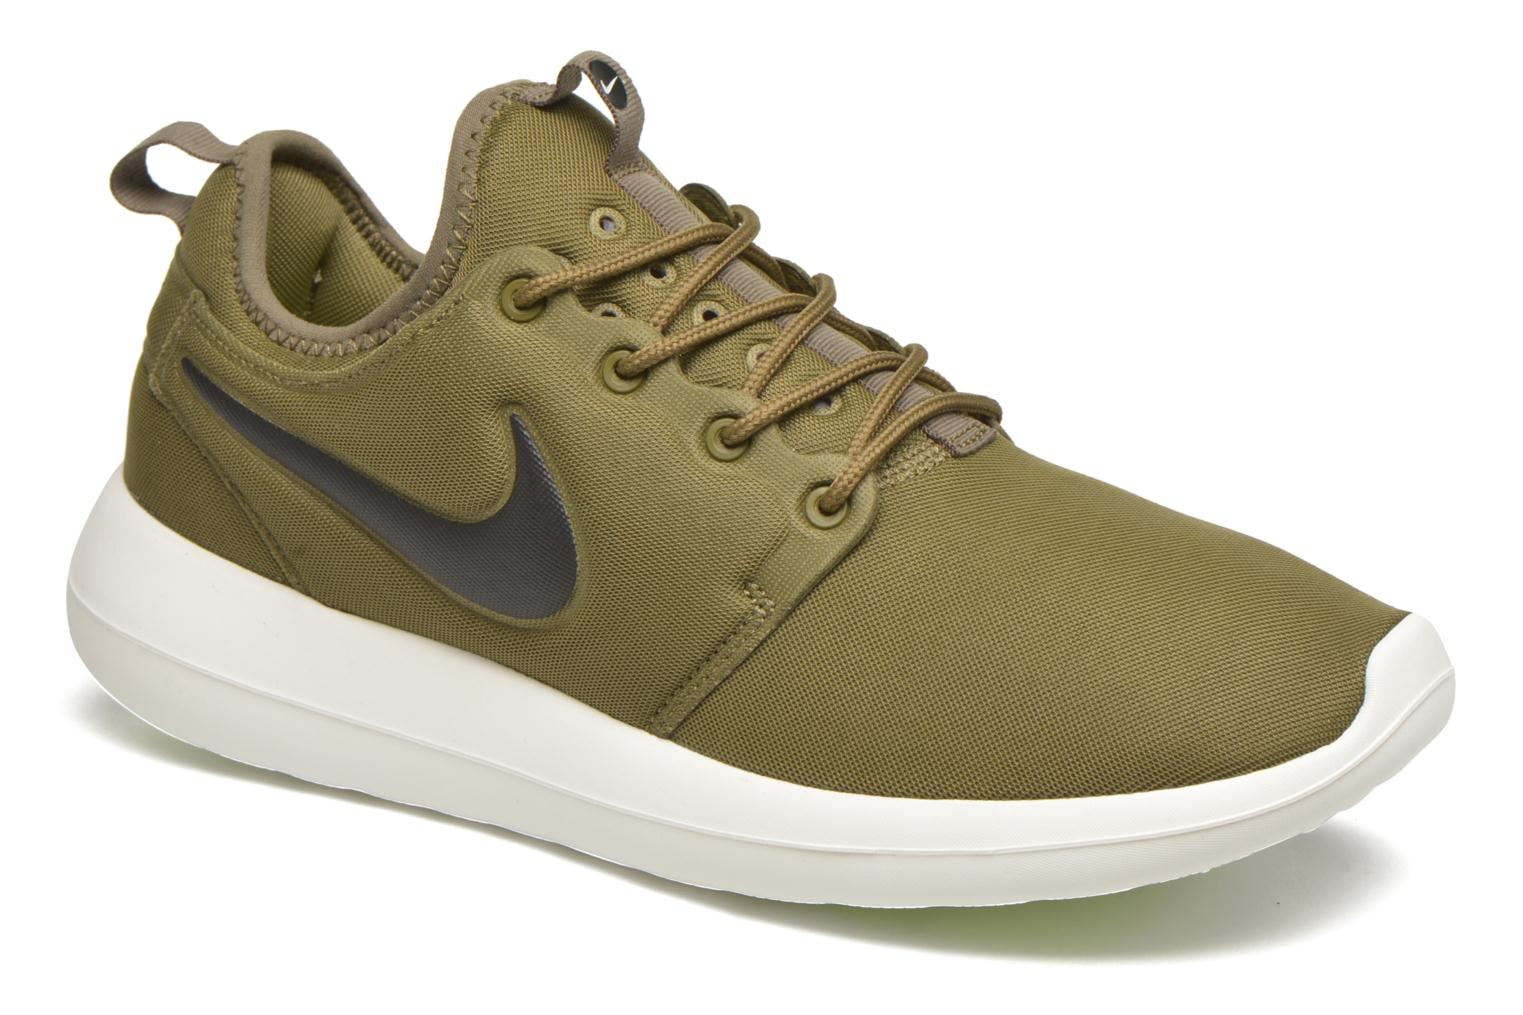 aa7bc31af94e06 ... shopping sneakers nike nike roshe two verde vedi dettaglio paio fa879  33d47